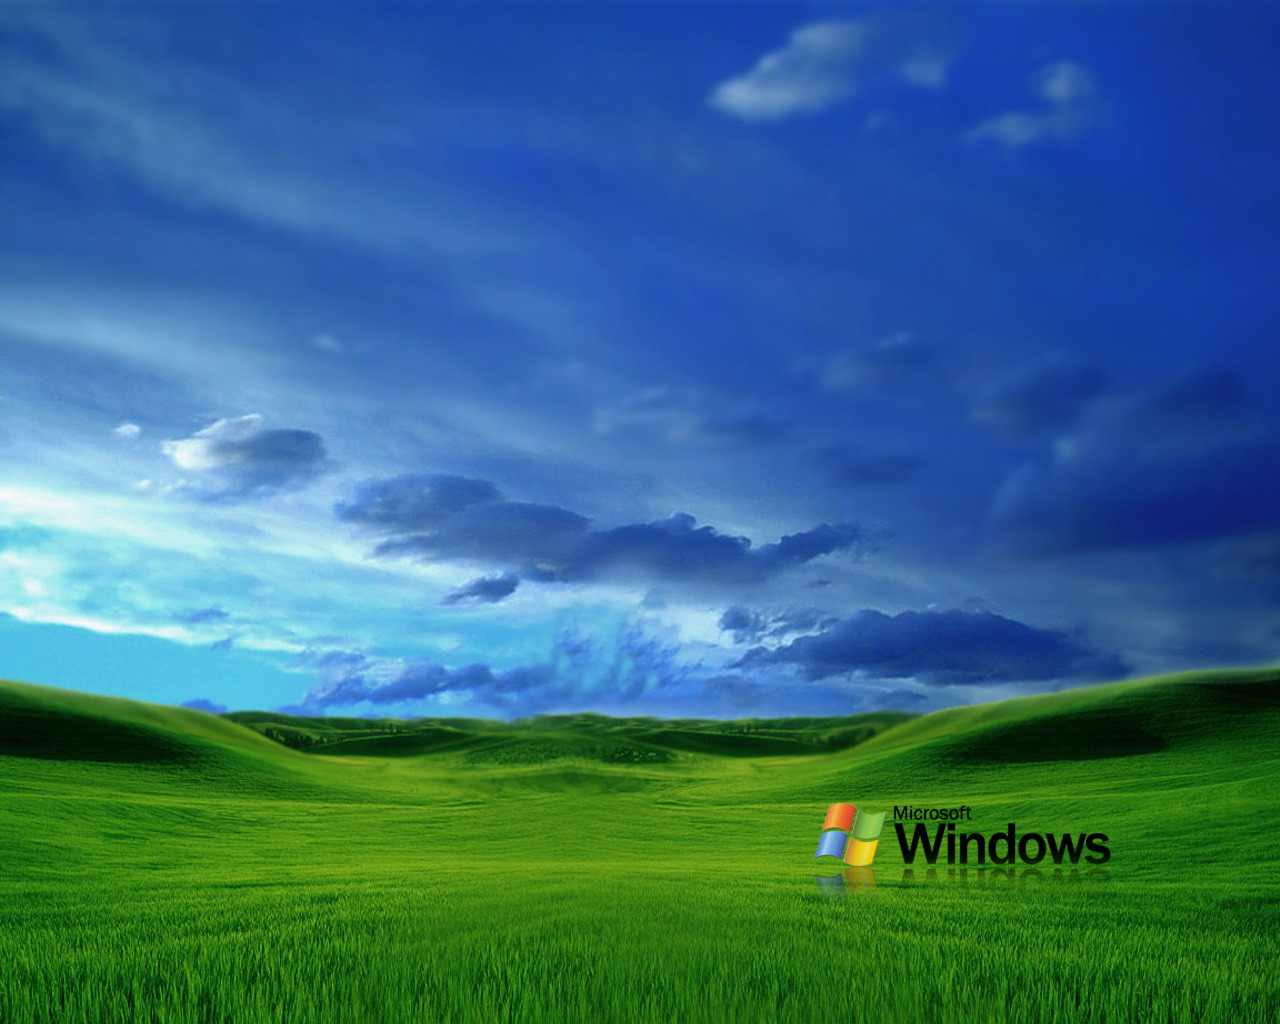 Windows XP Bliss Wallpaper Now WallpaperSafari Image Source From This